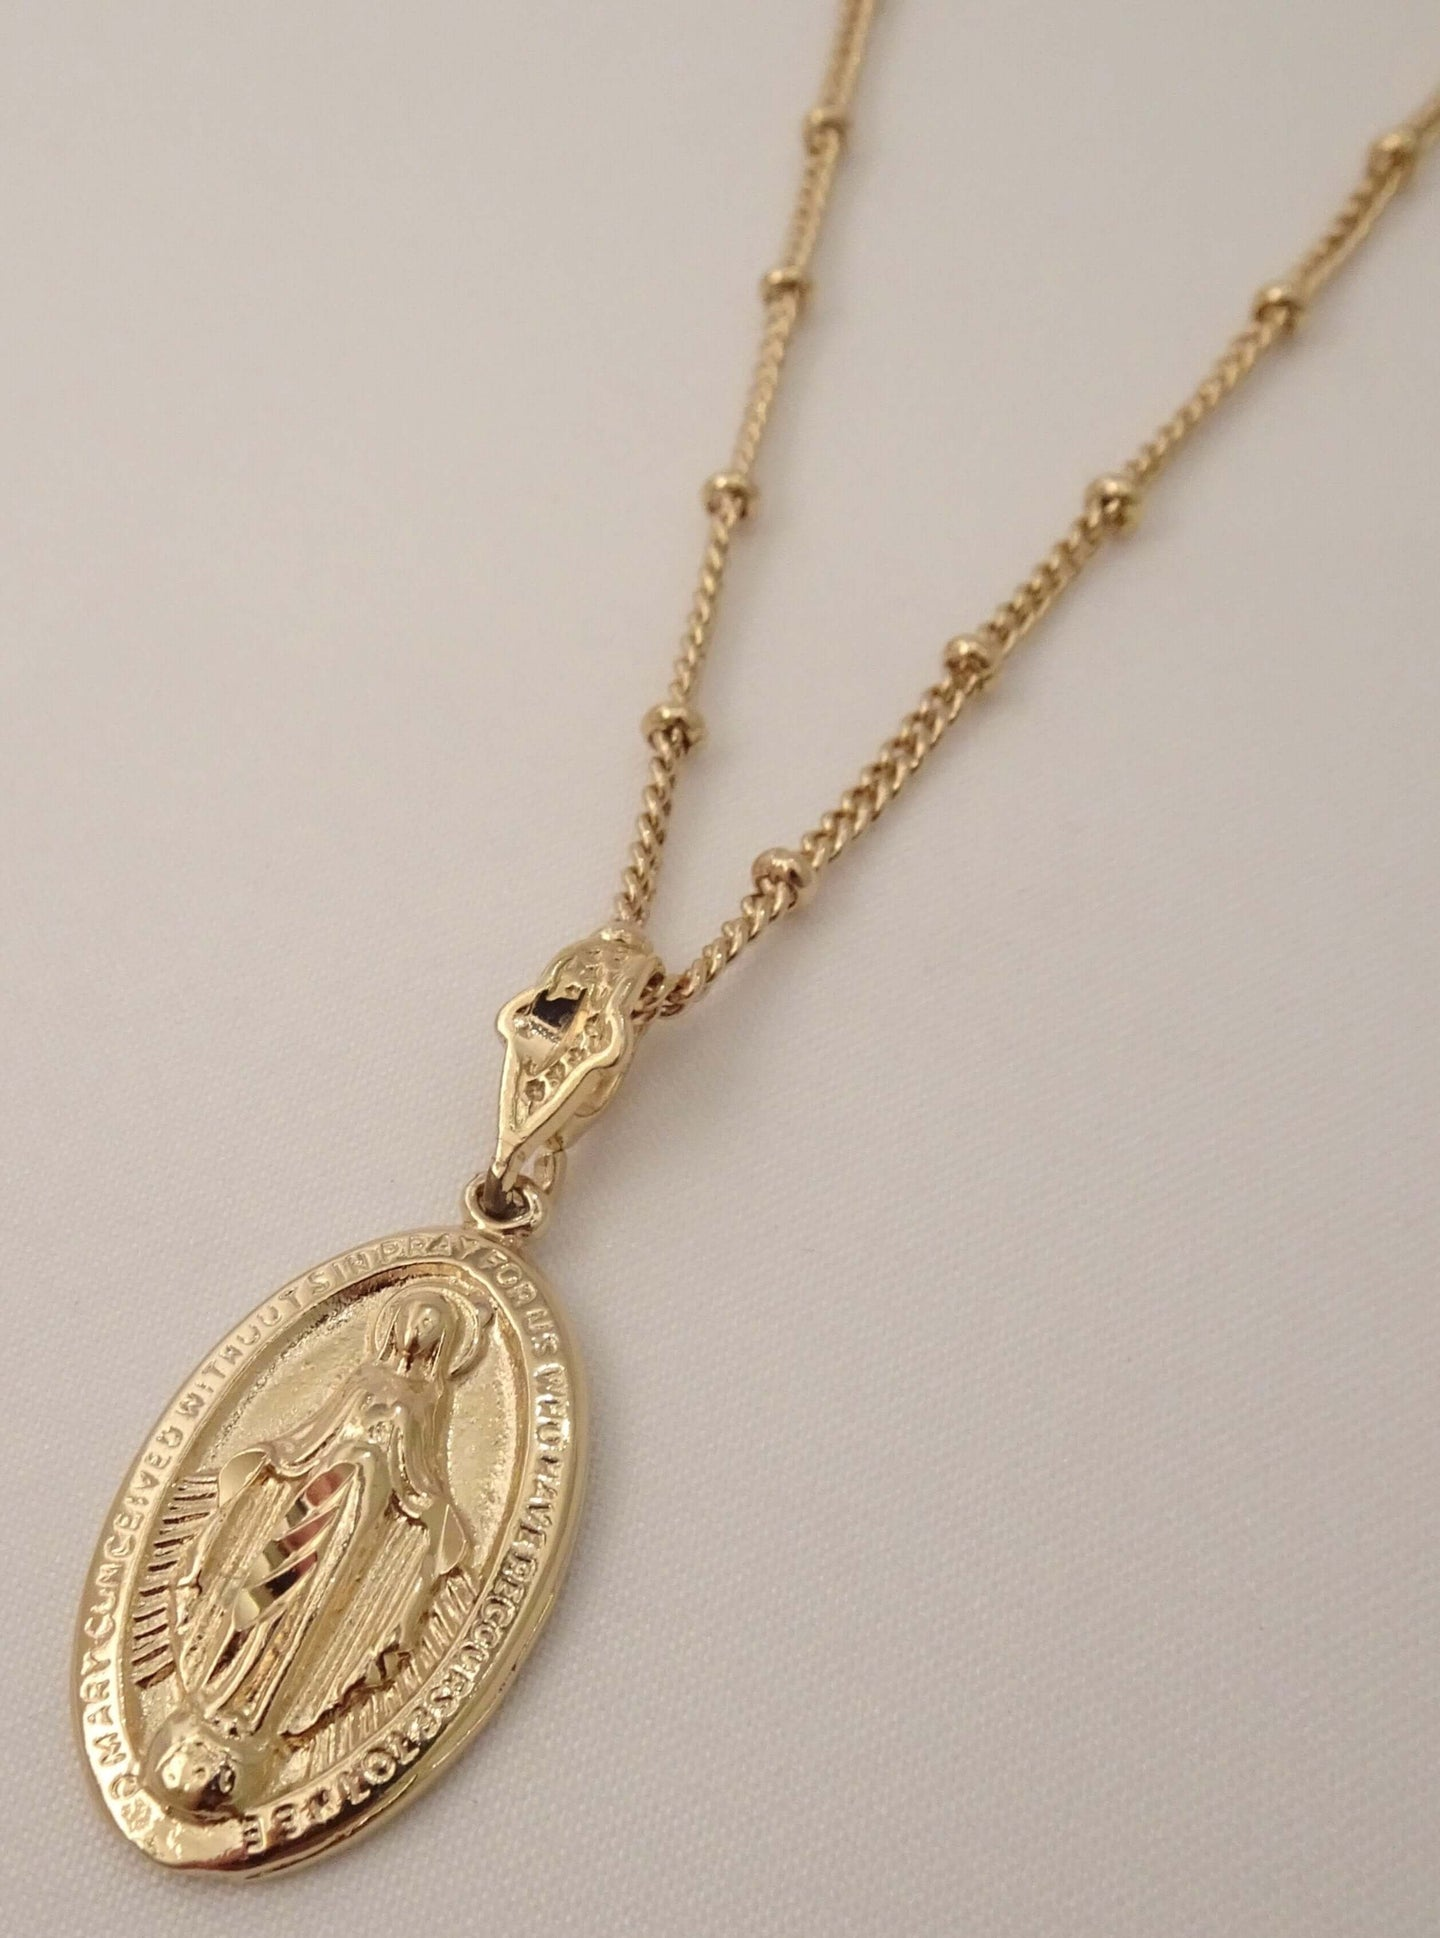 gold virgin Mary pendant necklace, Virgin Mary Necklace, Gold Virgin Mary Necklace, Virgin Mary Pendant, saint necklaces, virgin Mary gold pendant, mother Mary necklace, blessed mother necklace, Mary necklace gold, mary jewellery, lady gold